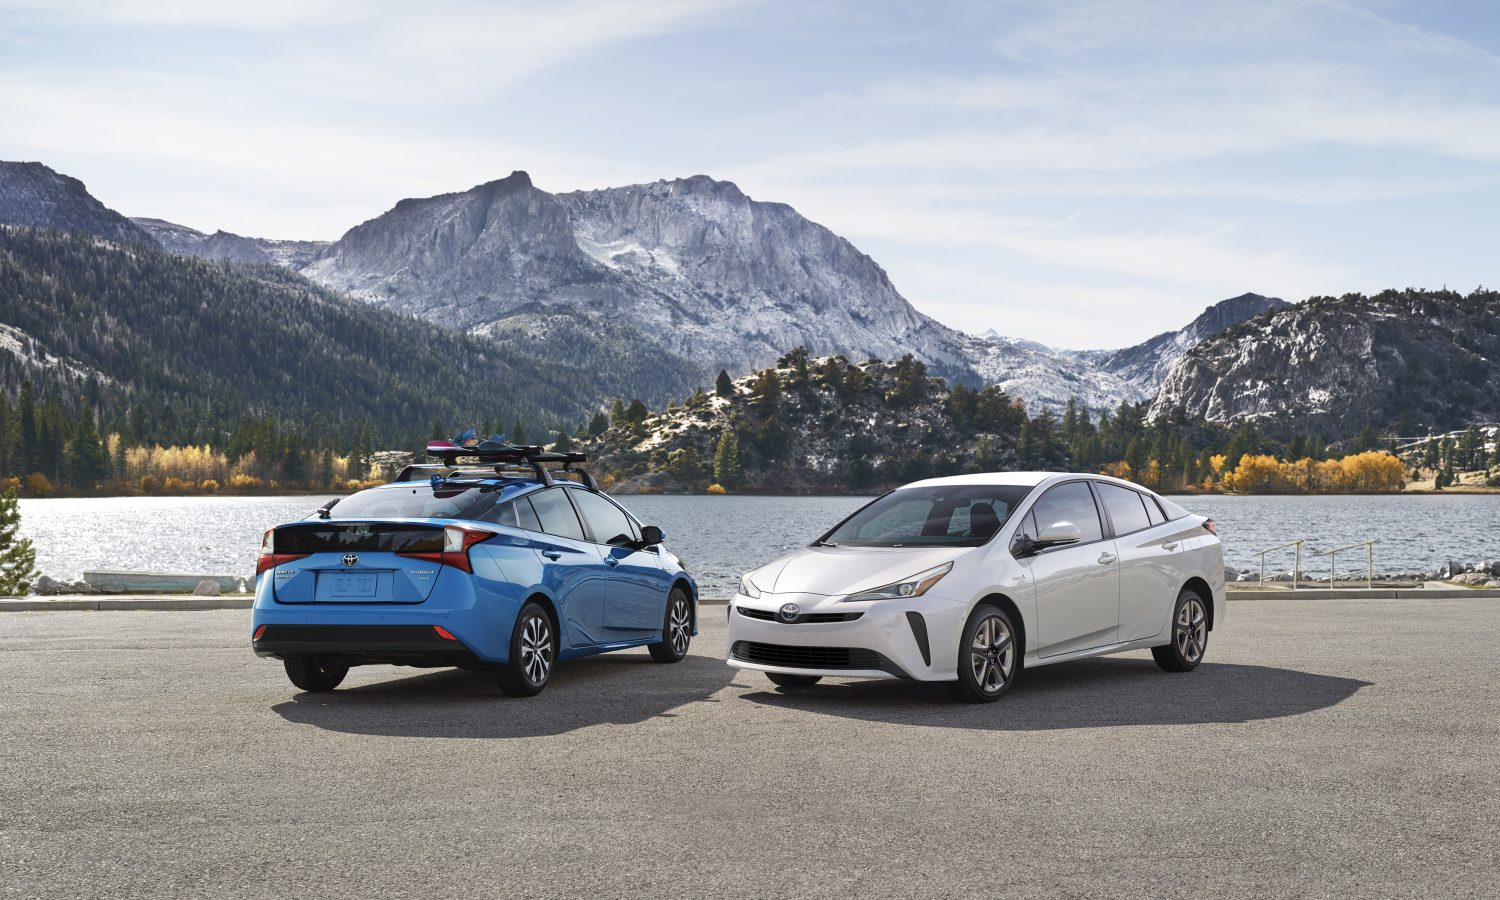 """Toyota's """"It's Unbelievable"""" Campaign Invites Consumers to Go More Places in the 2020 Prius"""